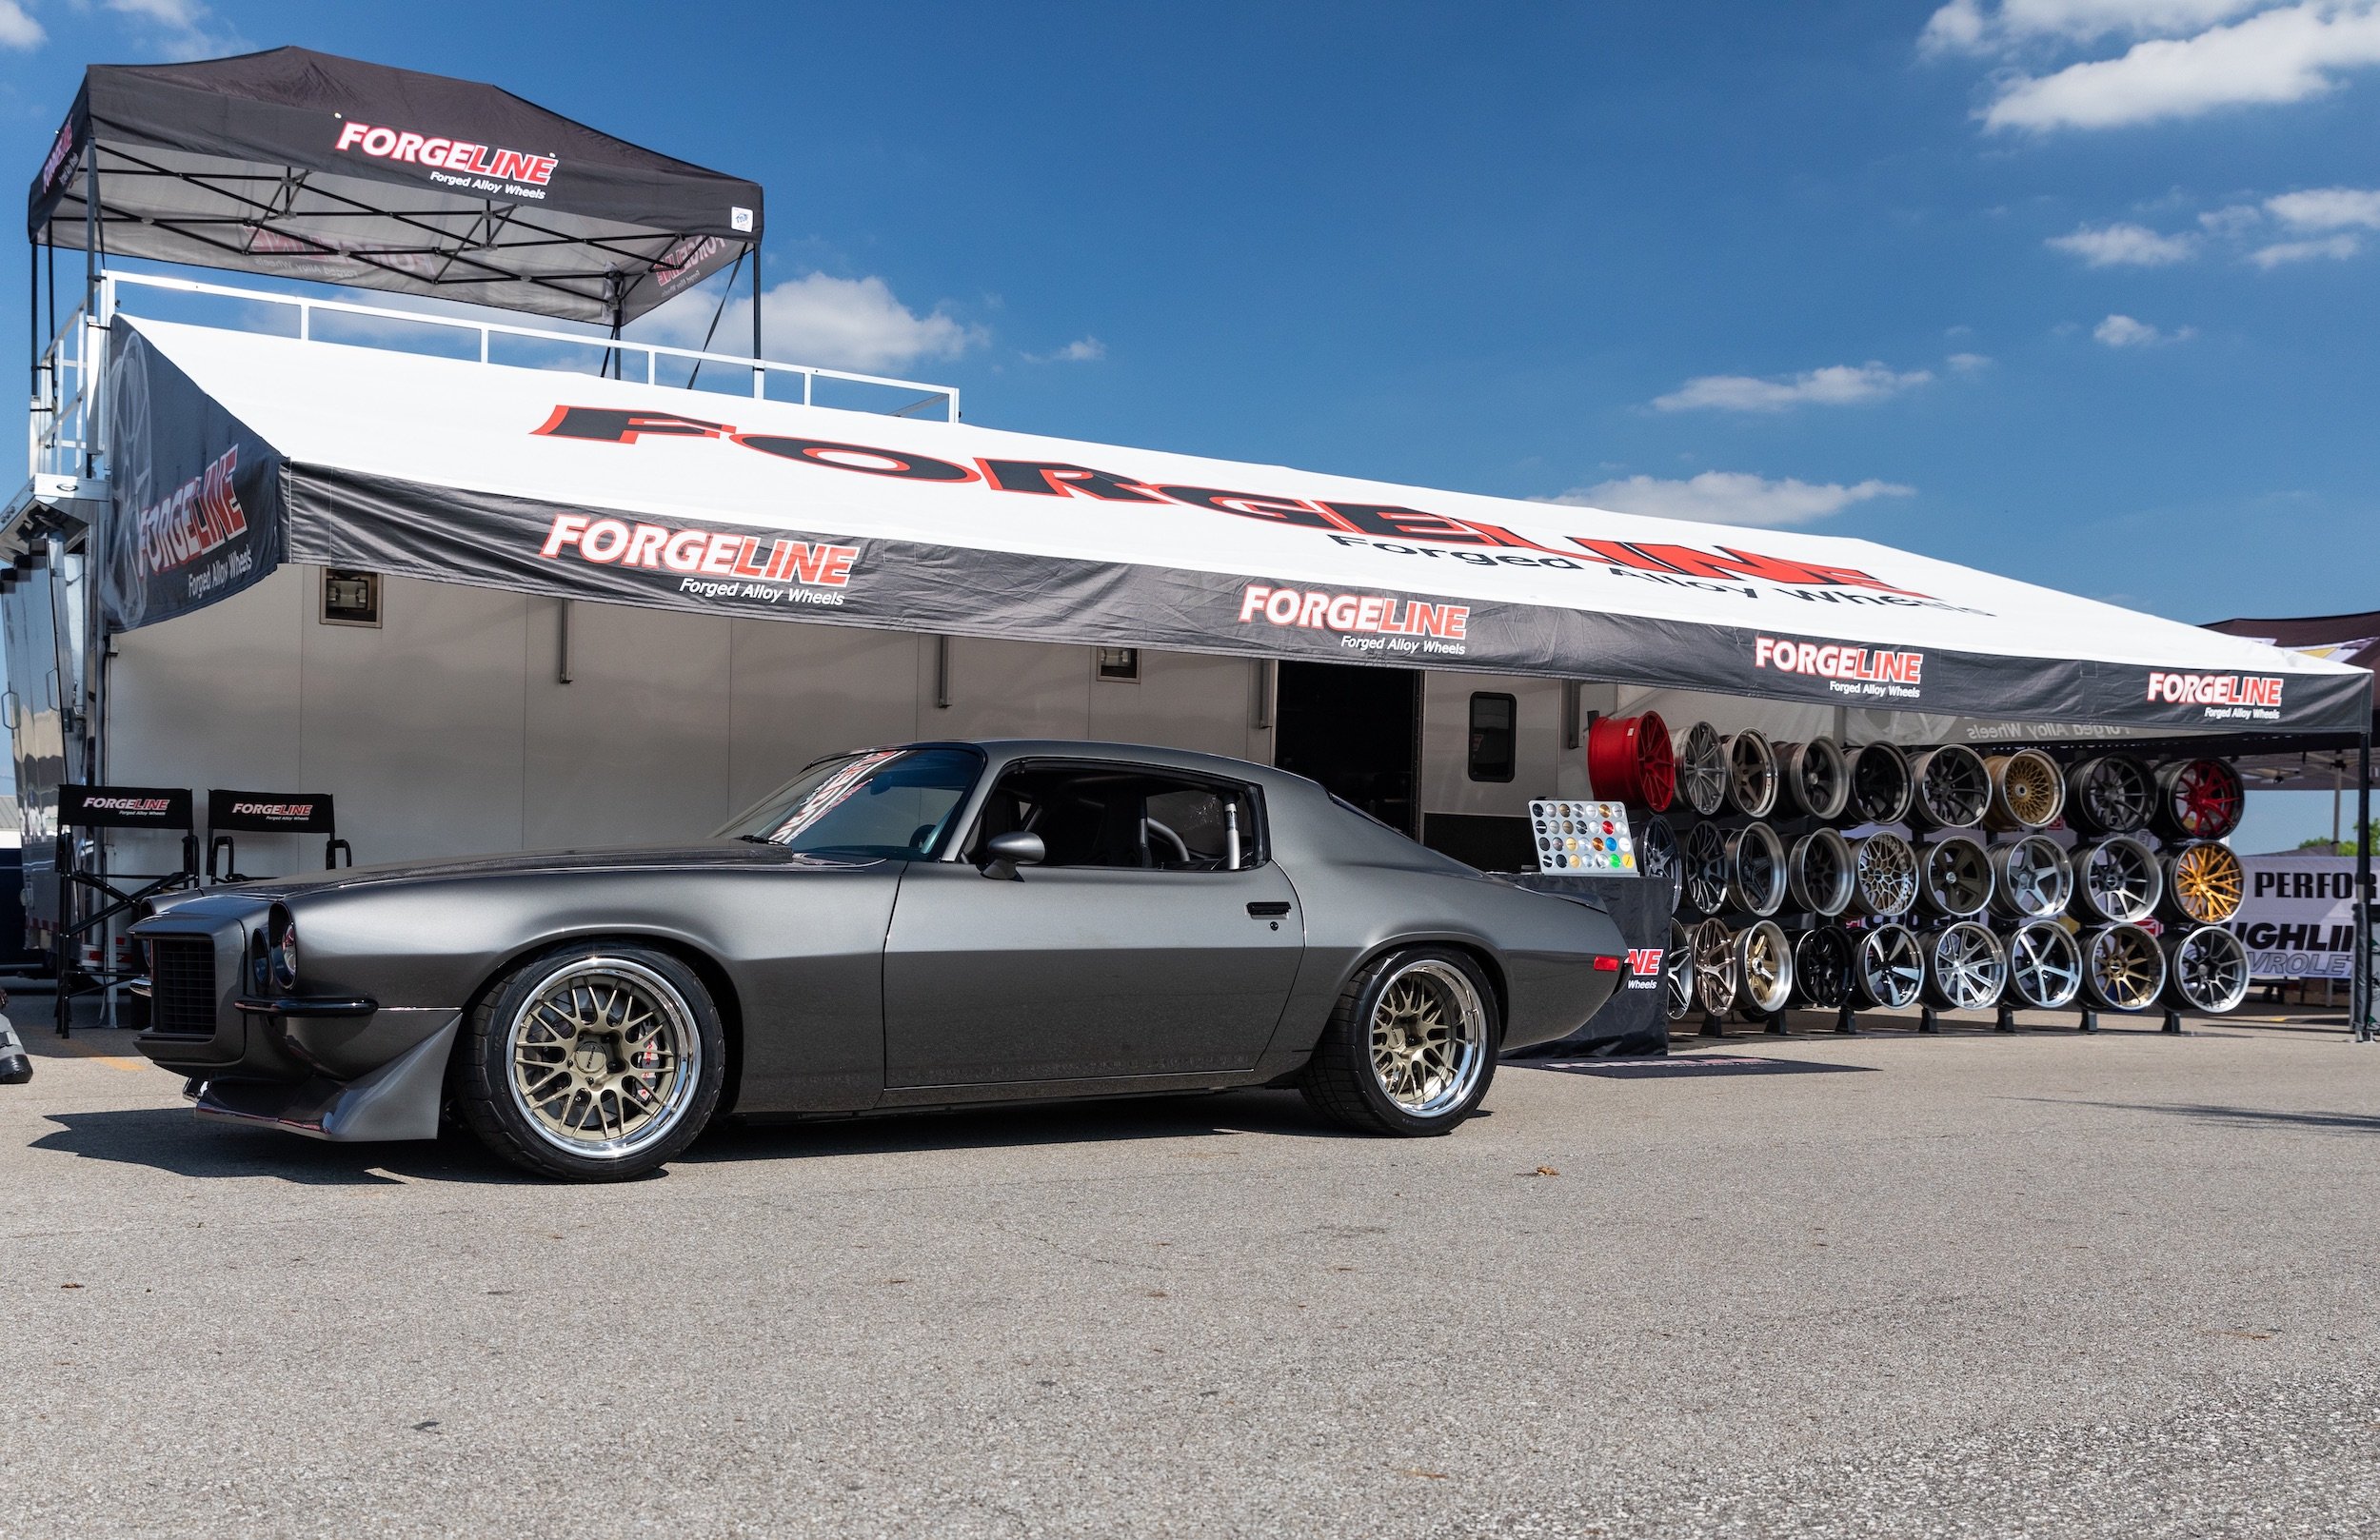 Home | Forgeline Motorsports Custom Made-to-Order Forged